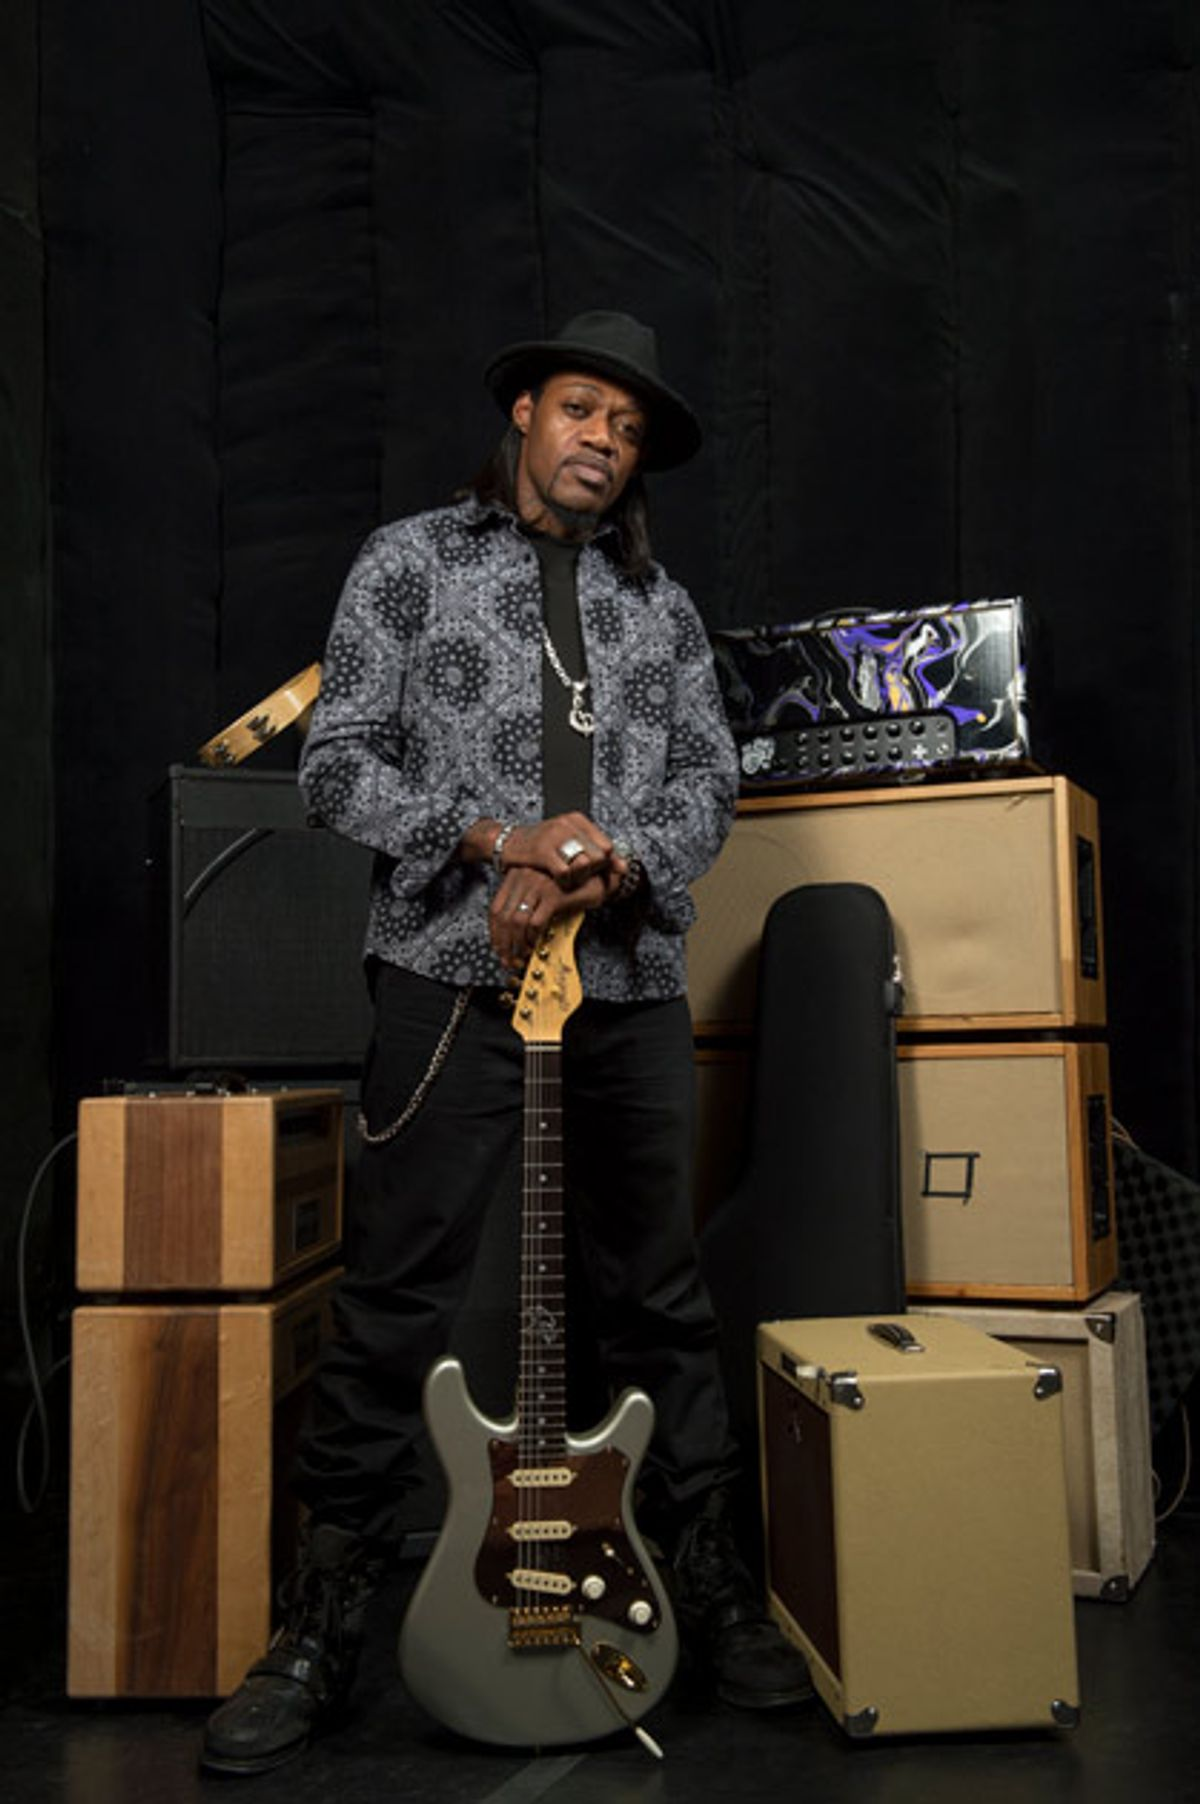 Eric Gales: 'Middle of the Road' Full Album Premiere